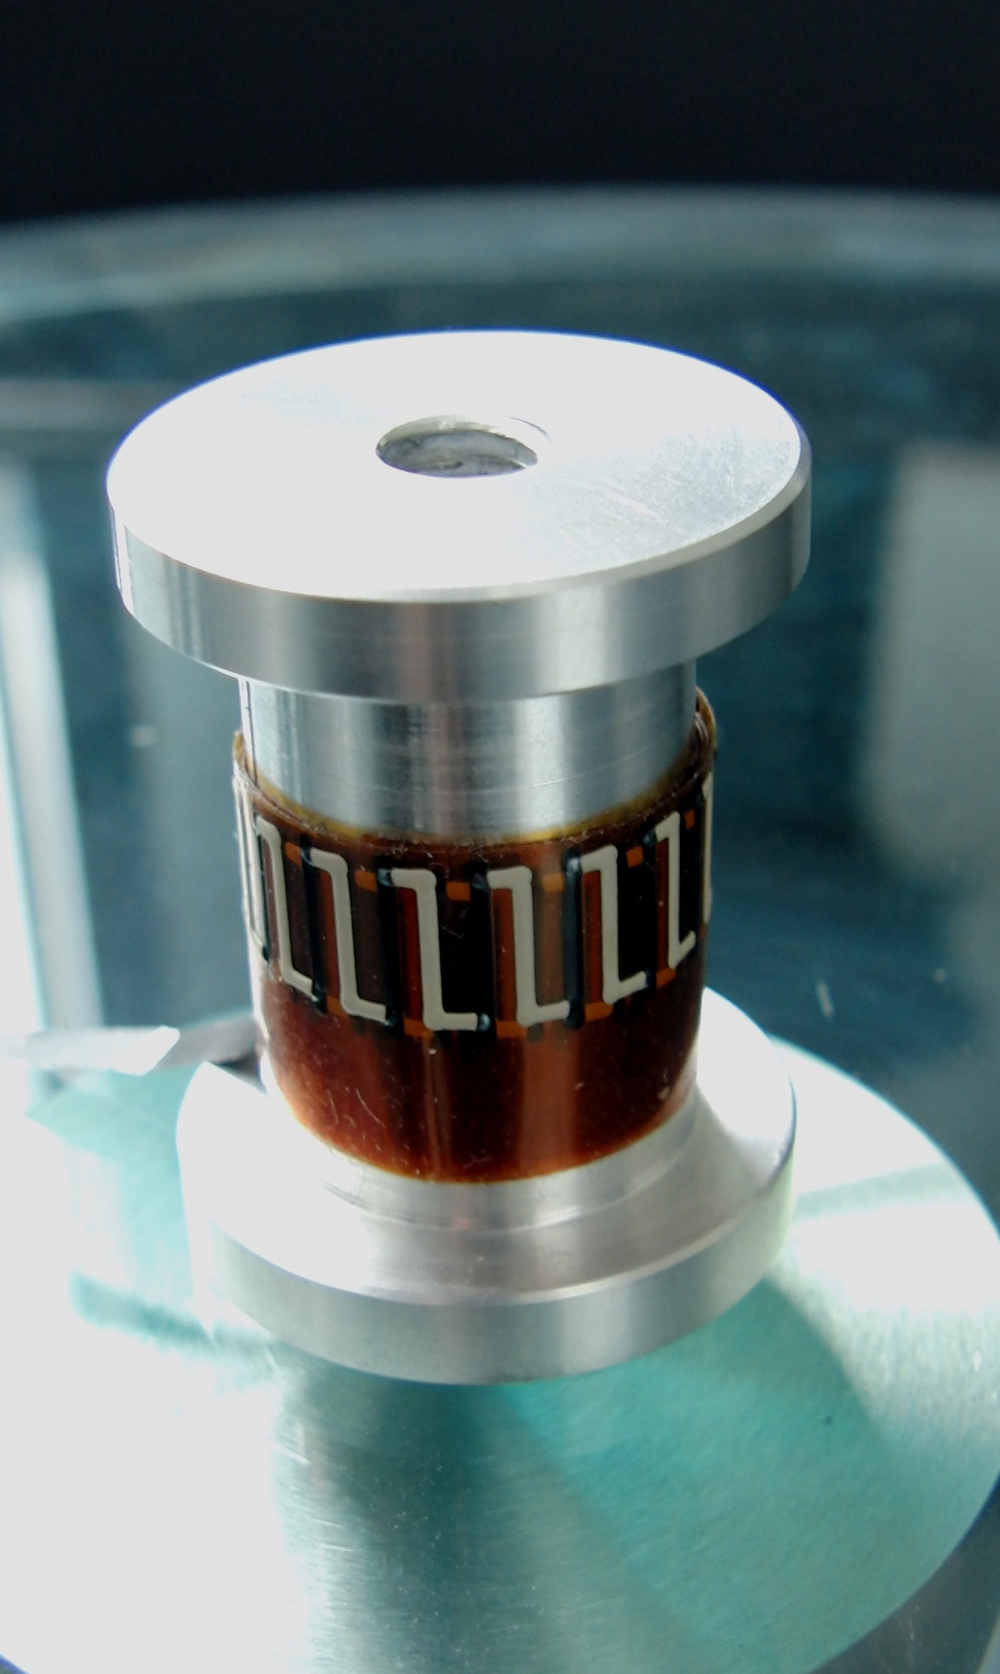 3D Printed Thermoelectric Generator Material is Flexible Enough to Install Practically Anywhere